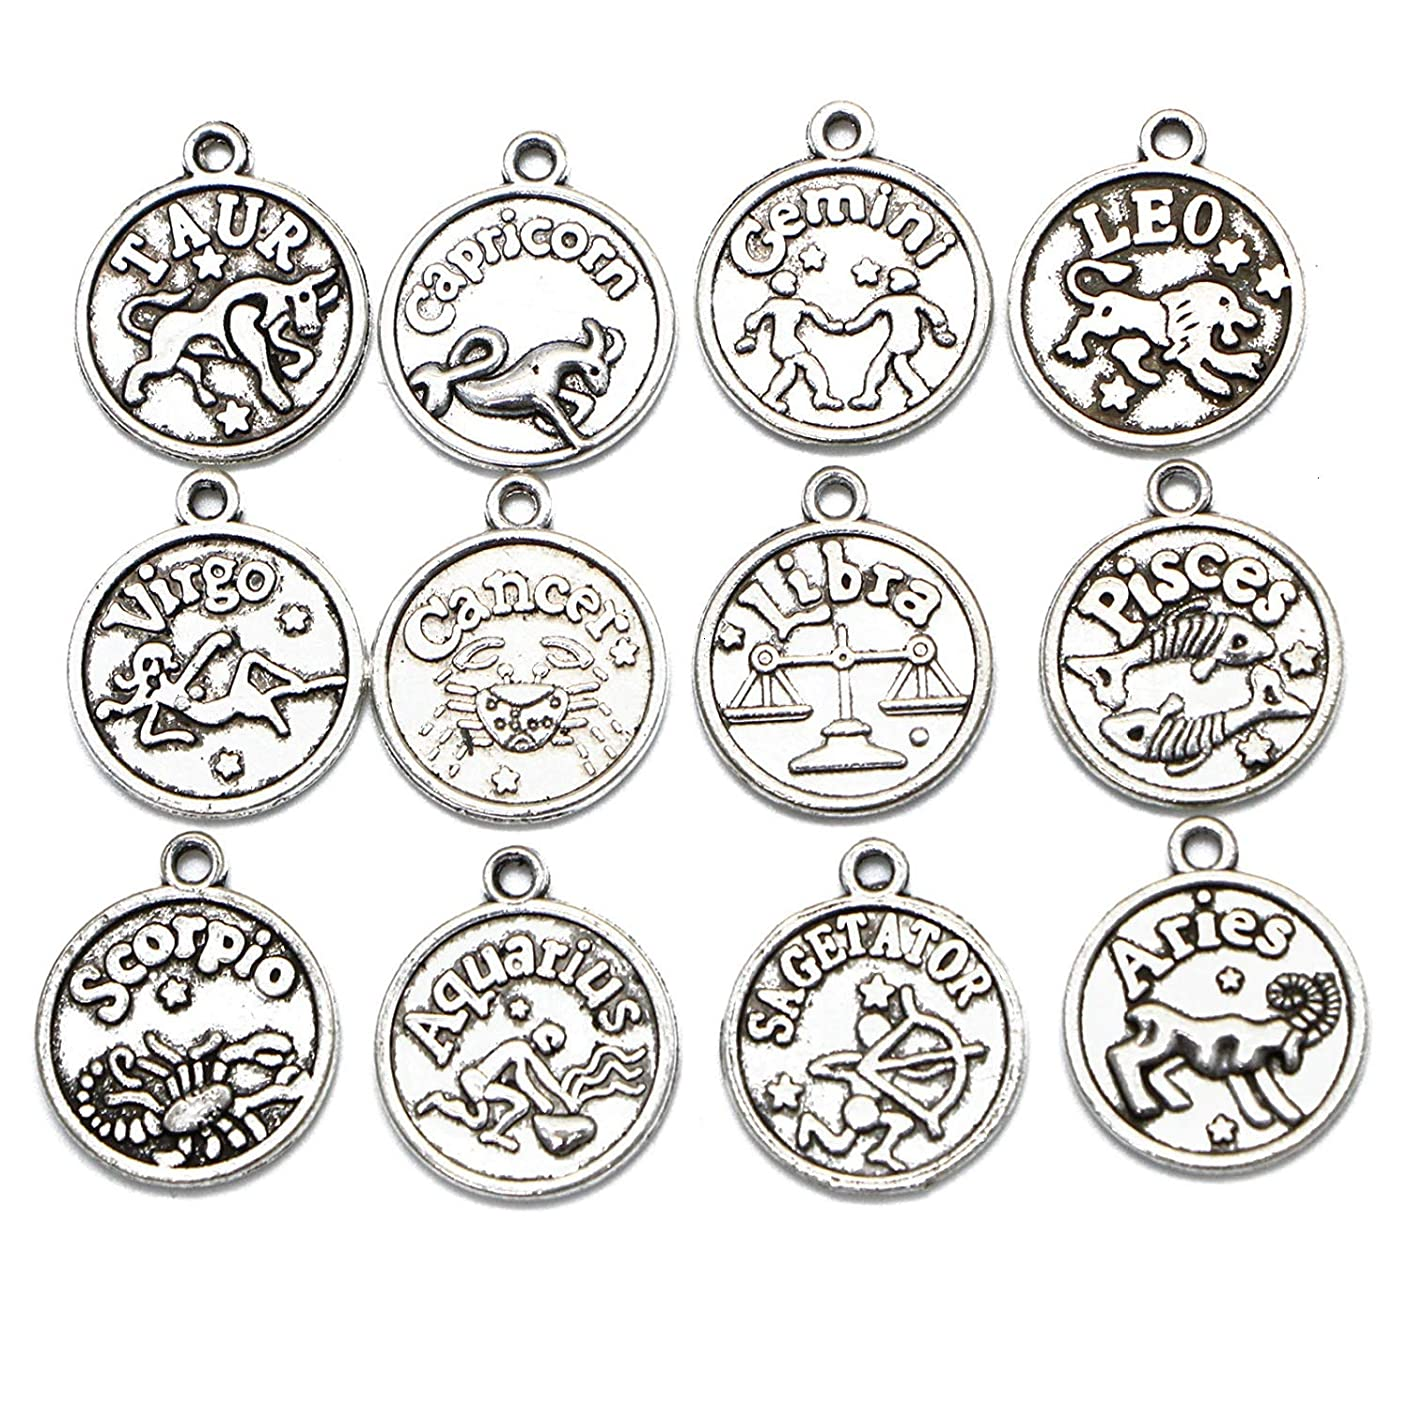 Monrocco 48Pcs Antique Silver 12 Constellation Charms Pendants for Jewelry Making and Crafting